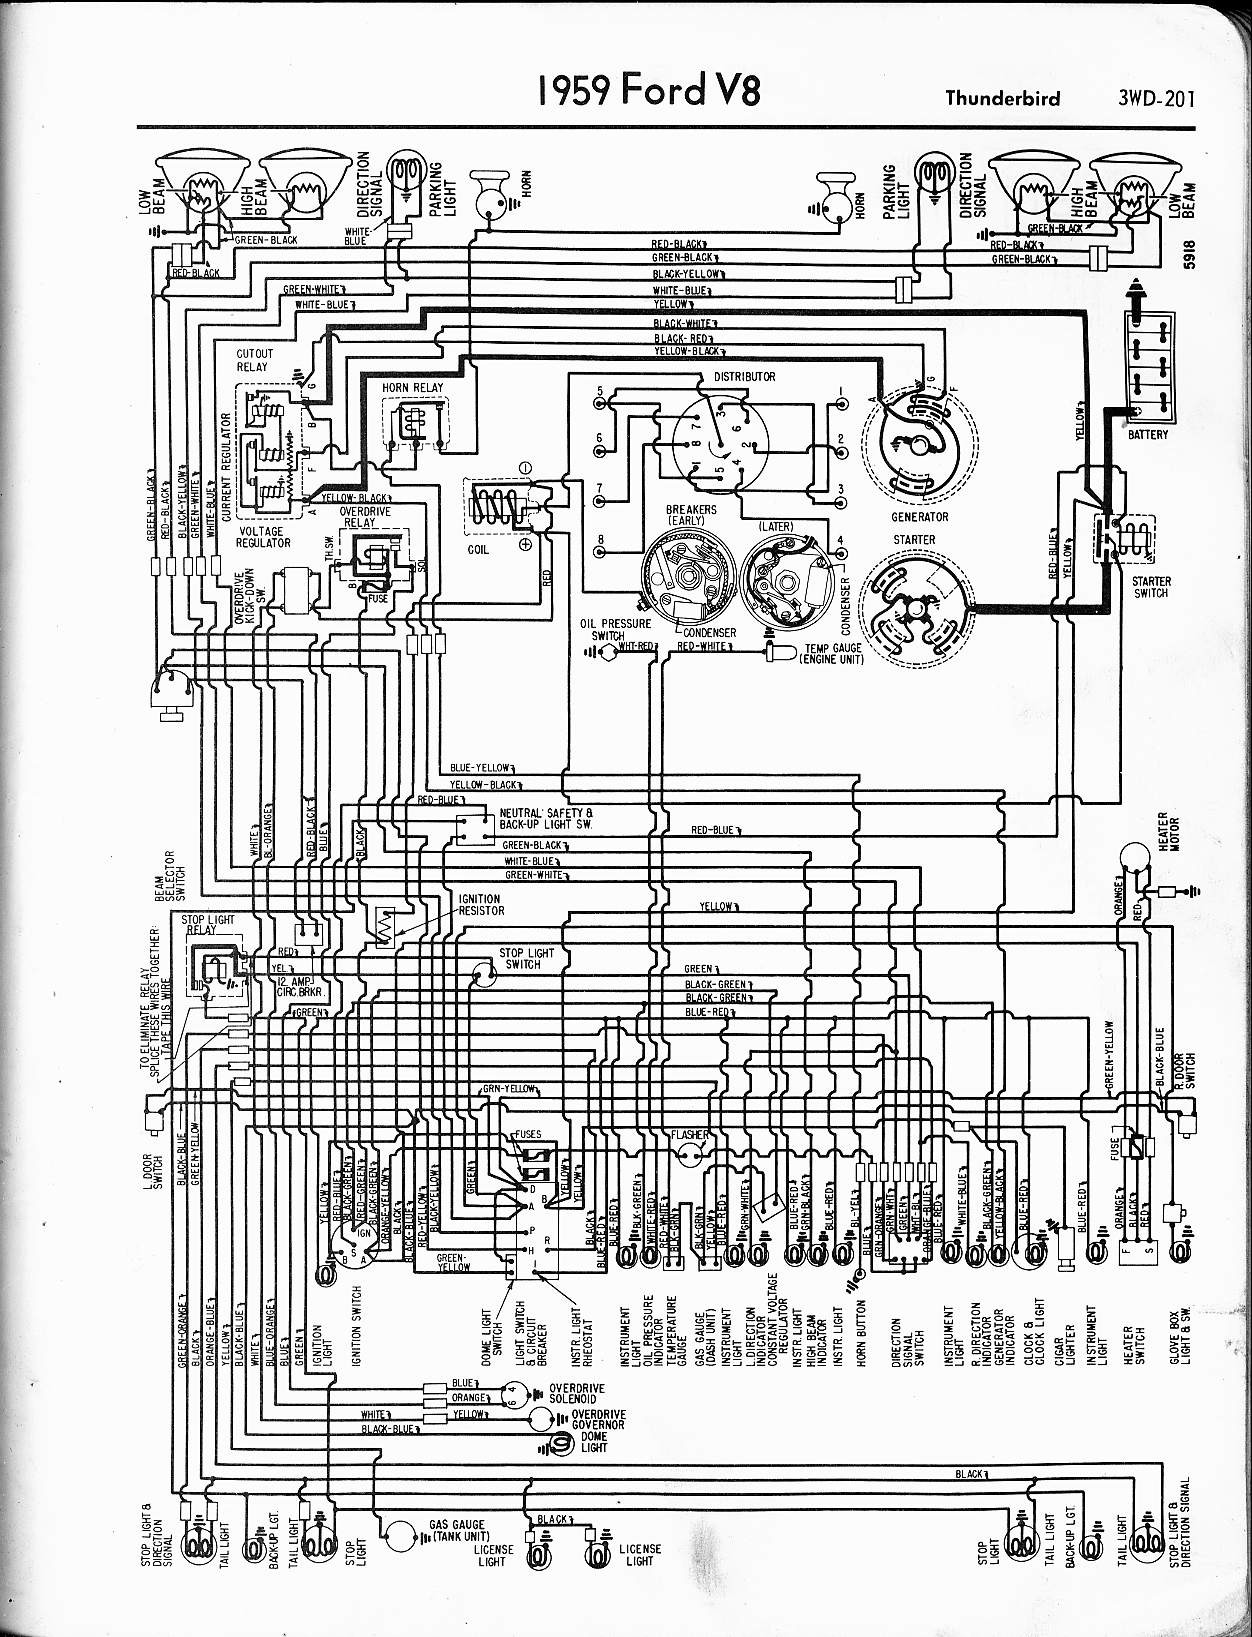 65 Ford Falcon Wiring Diagram Ba Engine 57 Diagrams My Of